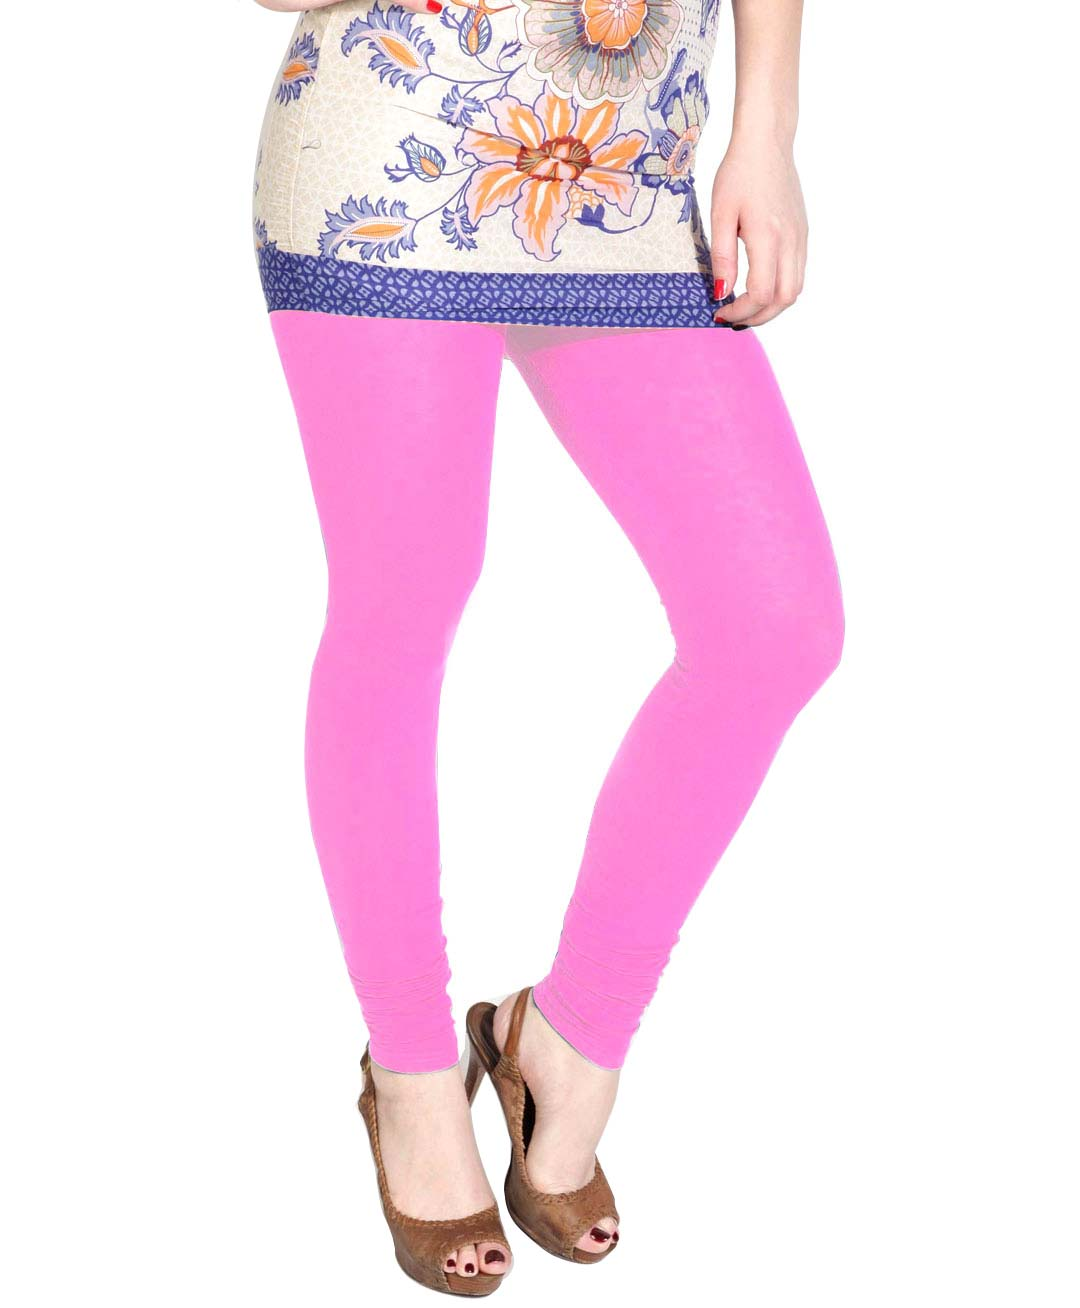 Leggings Fashion 2016 Trend Style Jeans